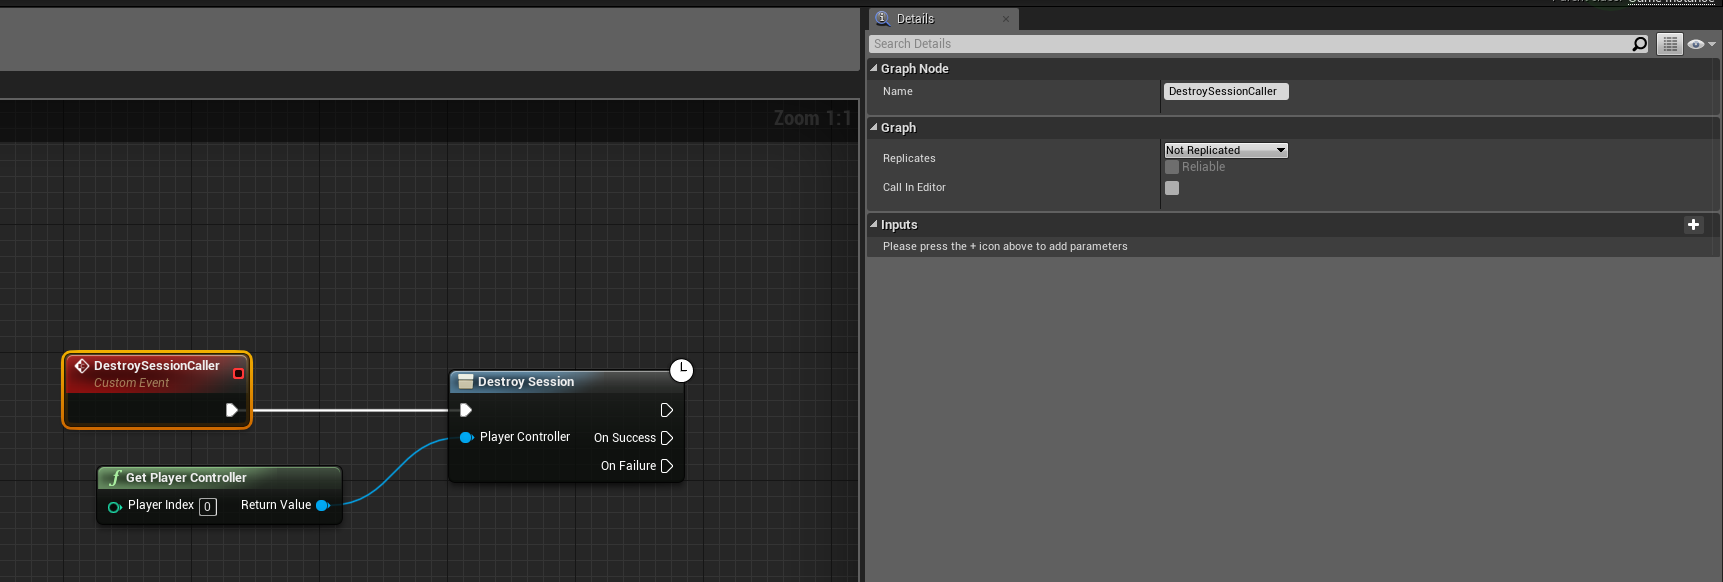 Destroy Session not working on Source Unreal Engine 4 22